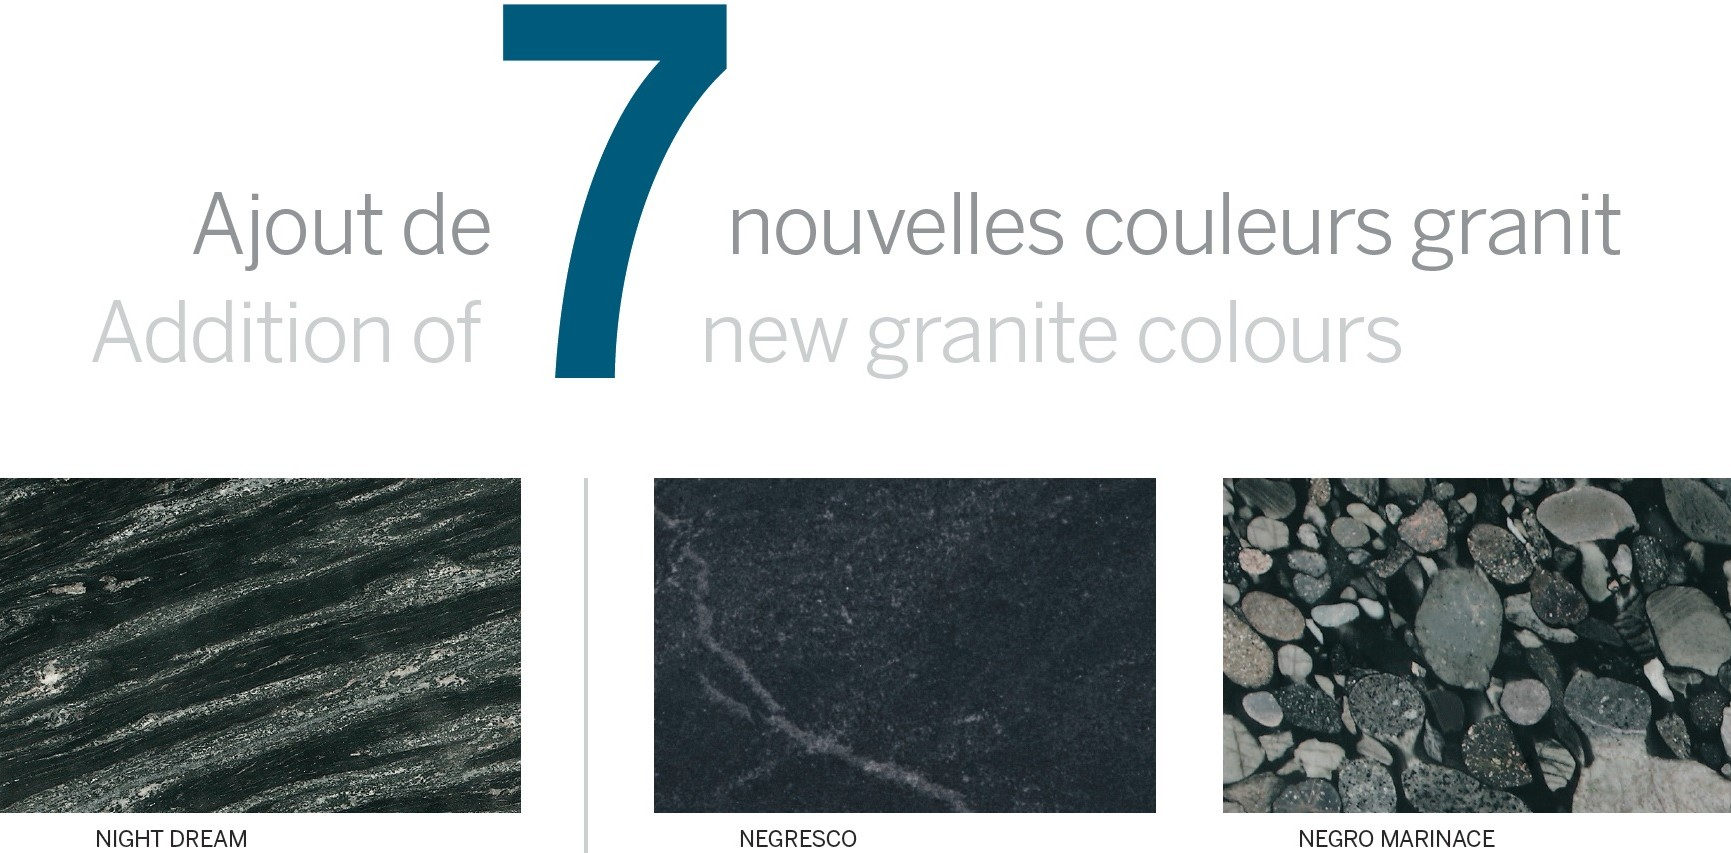 Prémoulé presents 7 new granite colours.